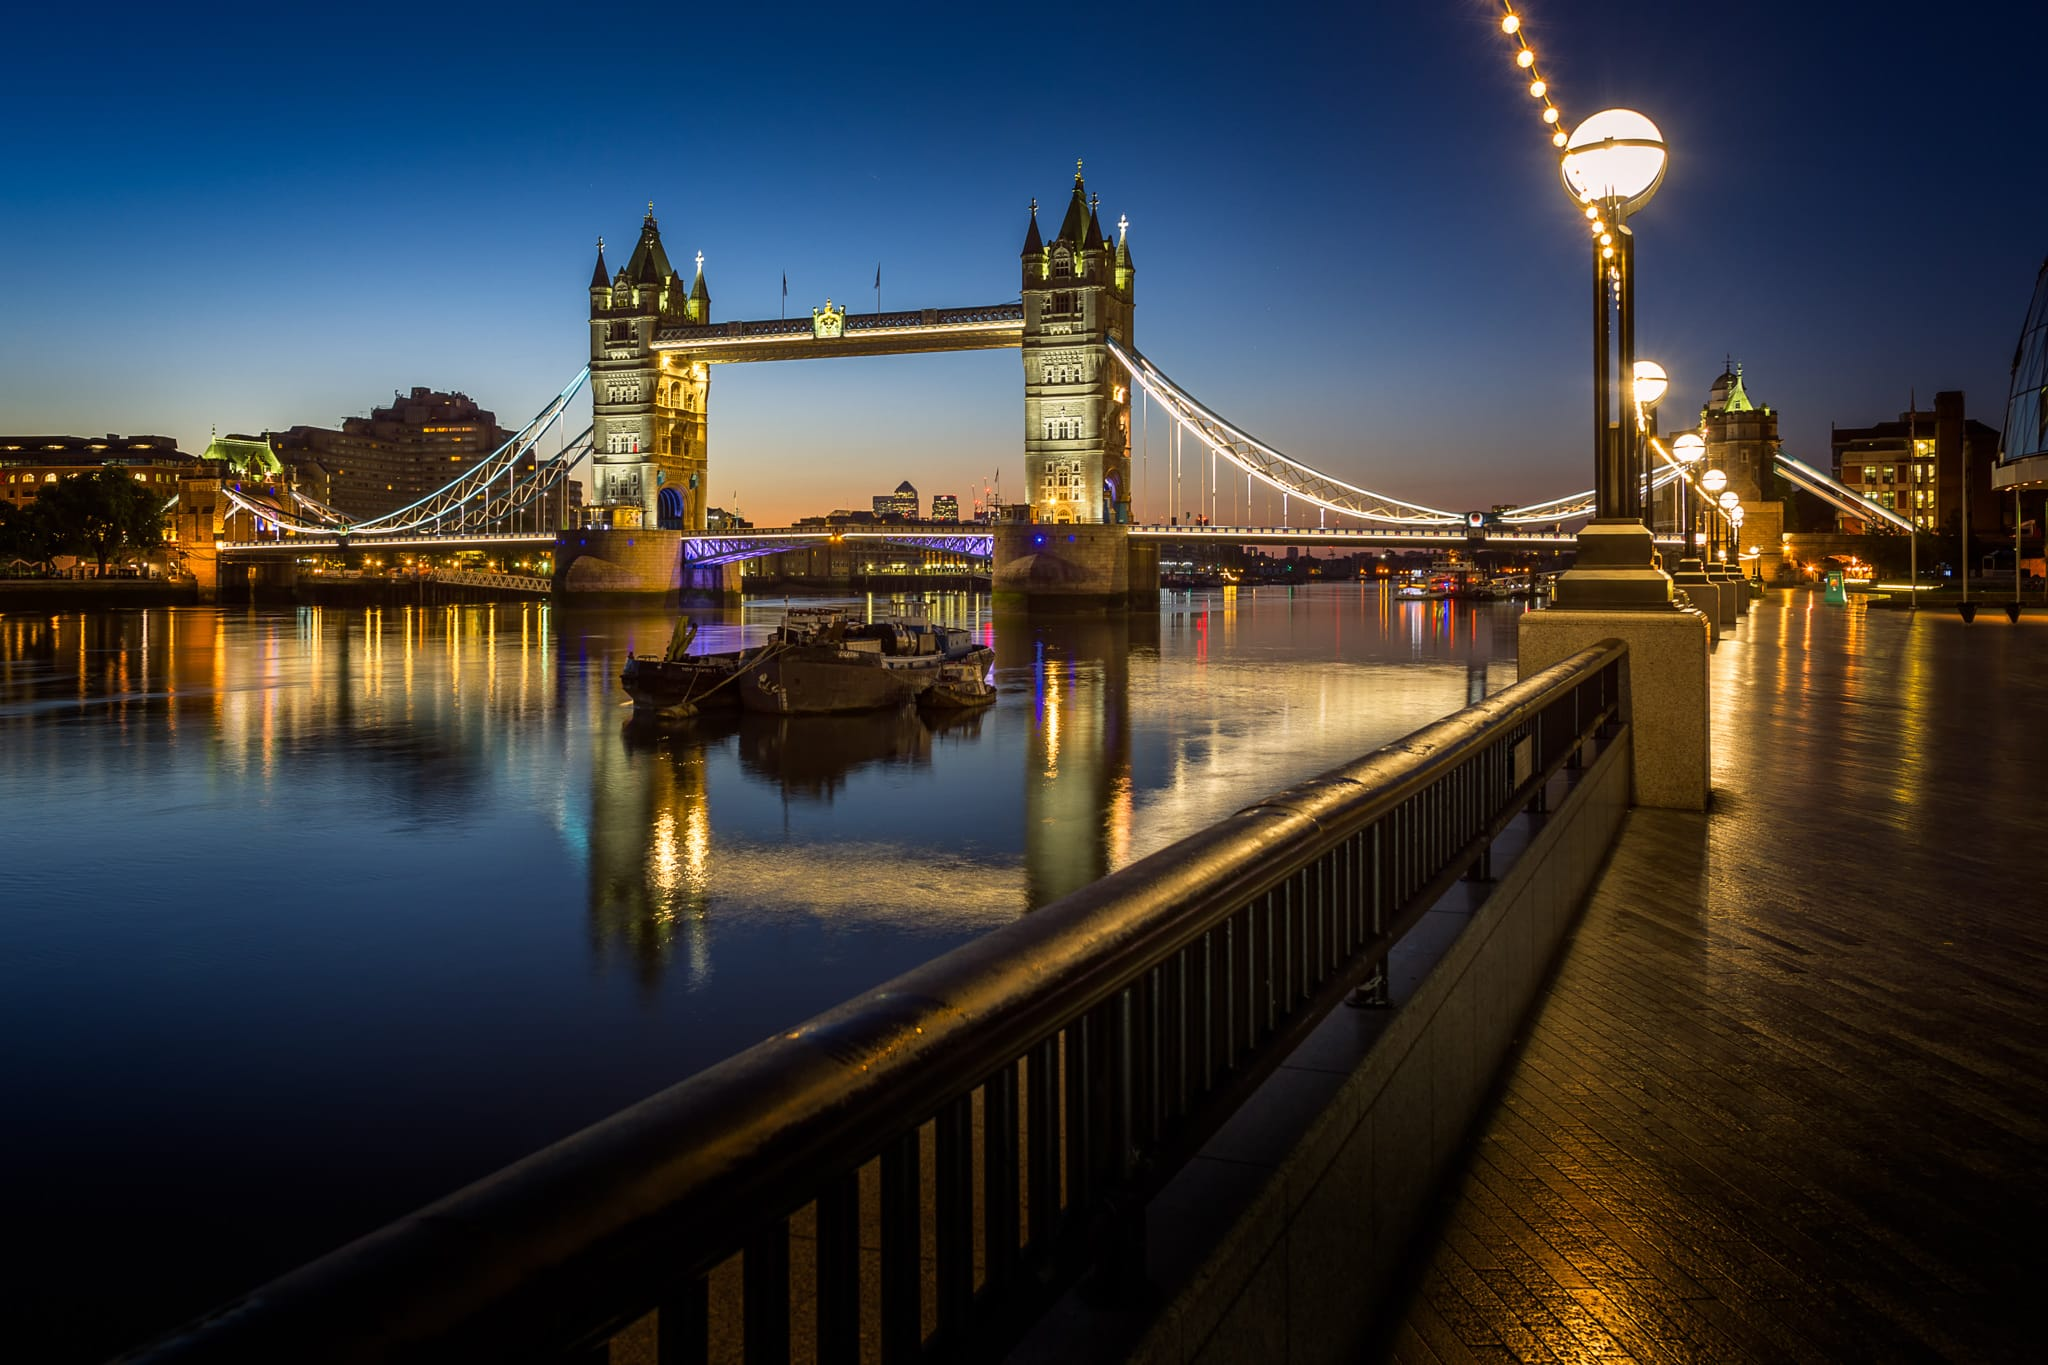 Tower Bridge | London, England